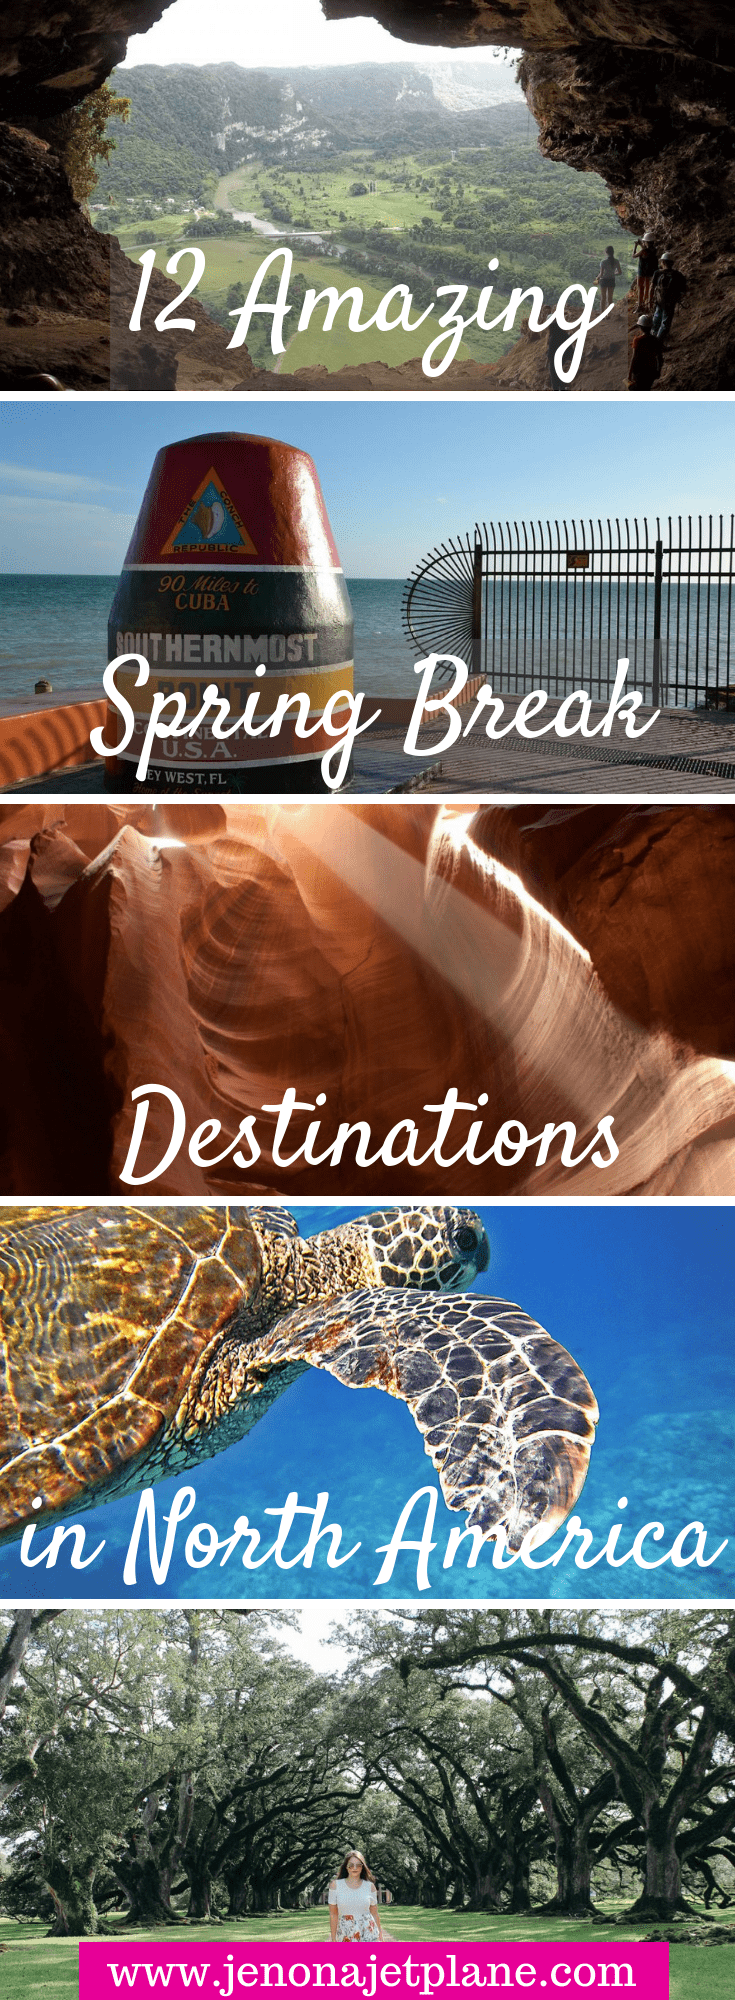 Us State Department Issues Spring Break Travel Warning For: 12 Warm Spring Break Destinations In North America